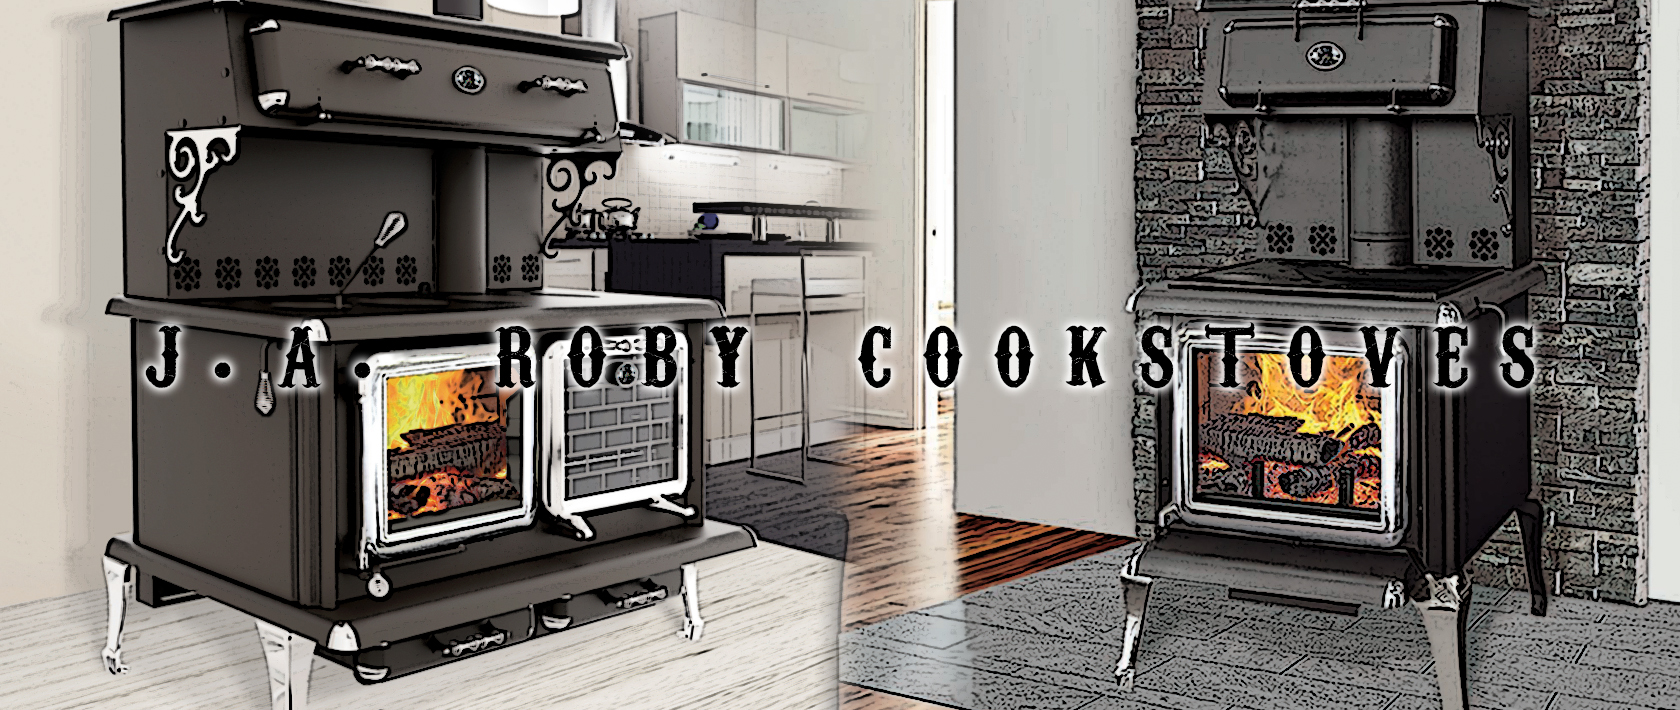 J.A. Roby Cookstoves – Cookstove Community